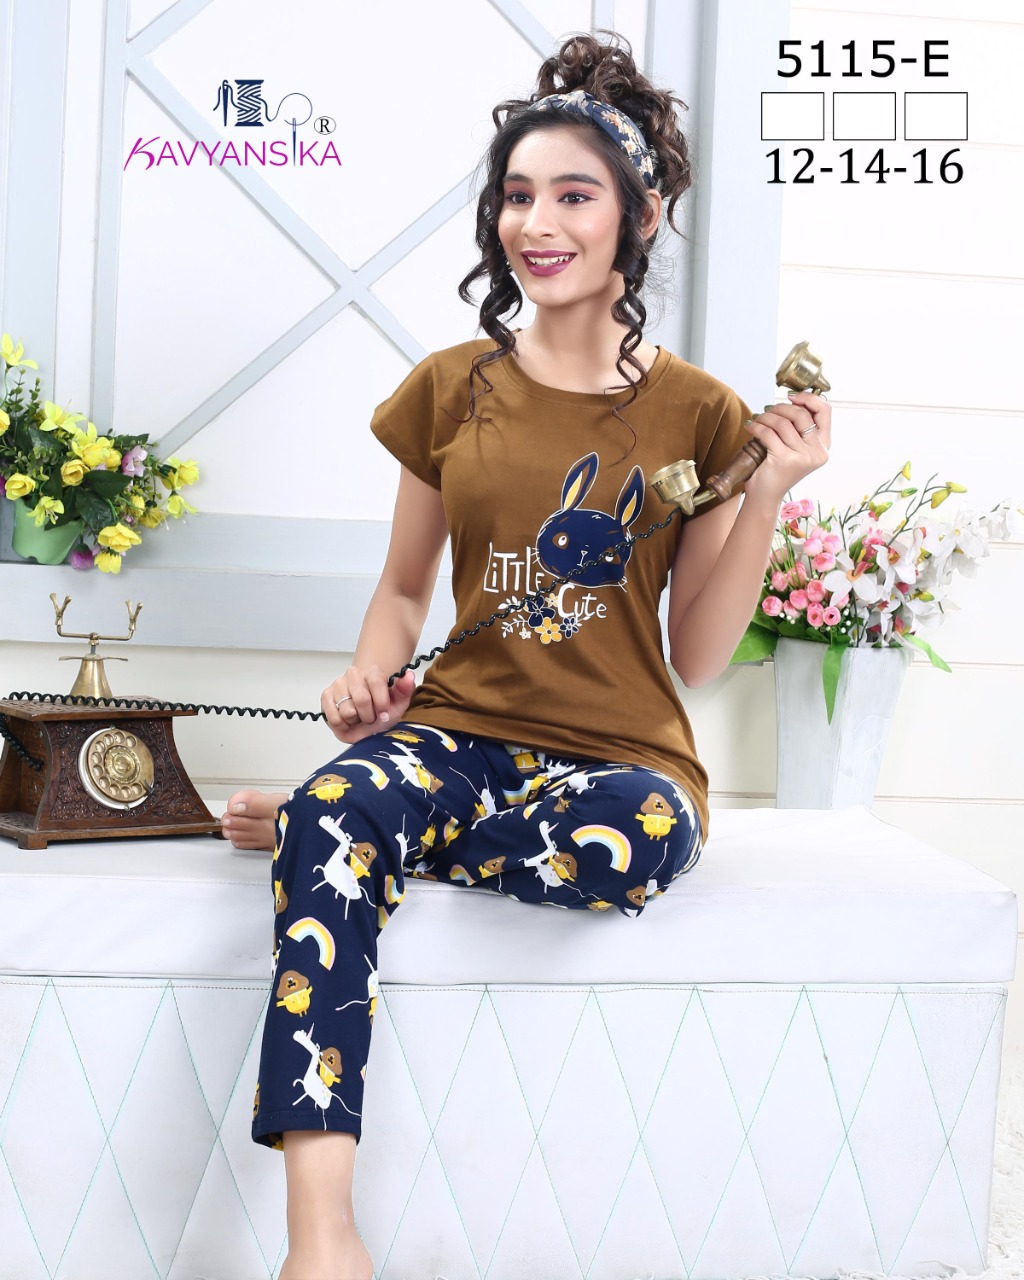 Kavyansika Launch Vol 5115 Hosiery Cotton Exclusive Kids Night Suits Collections